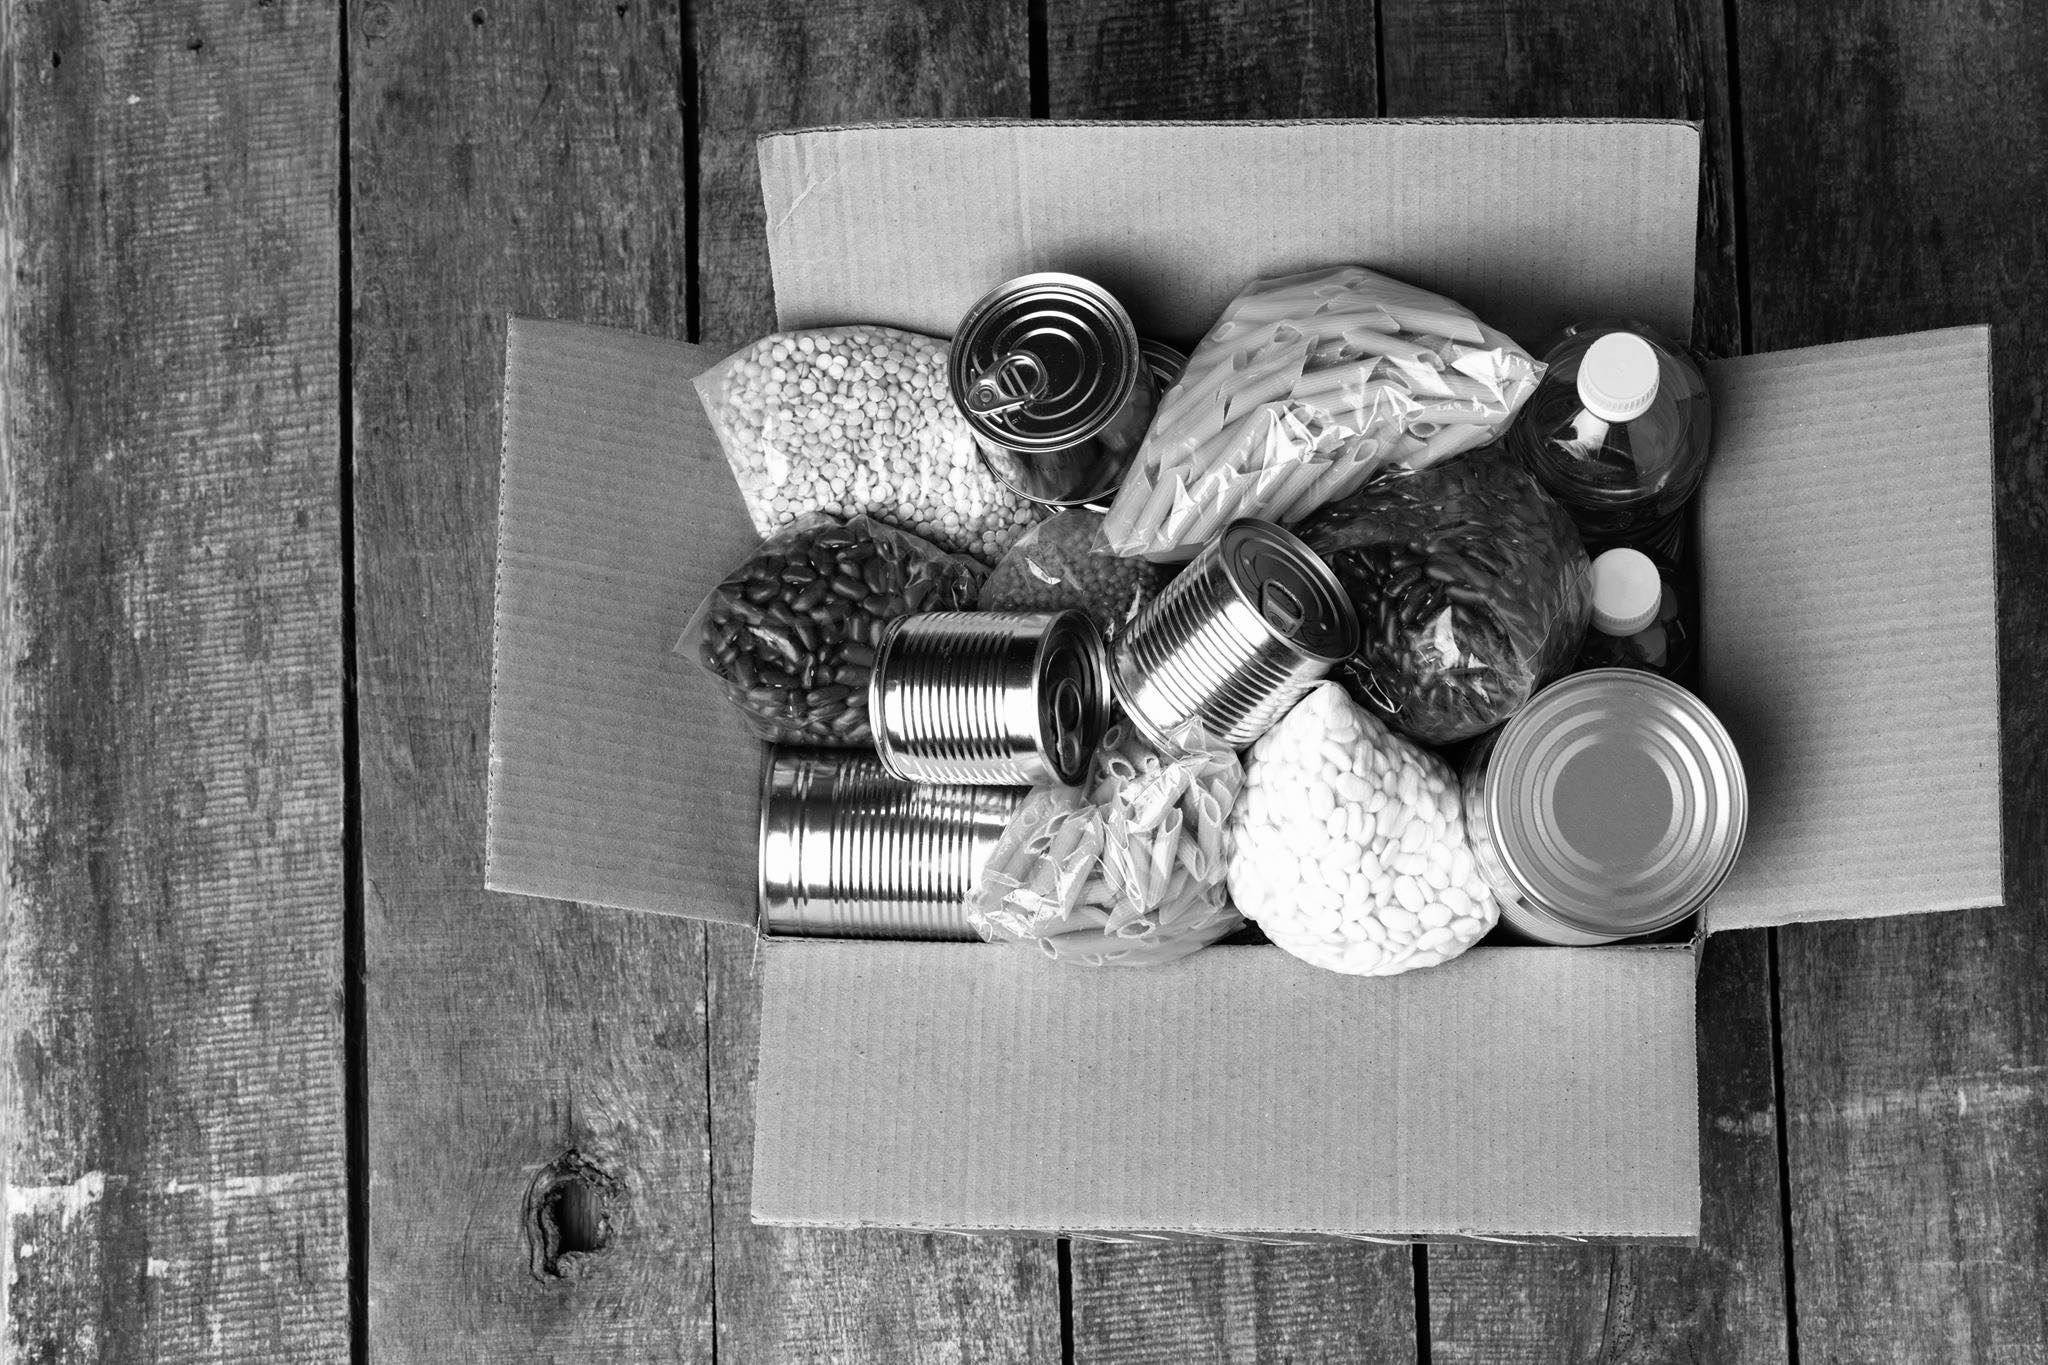 EMC calls on the Government to protect vulnerable groups from hunger